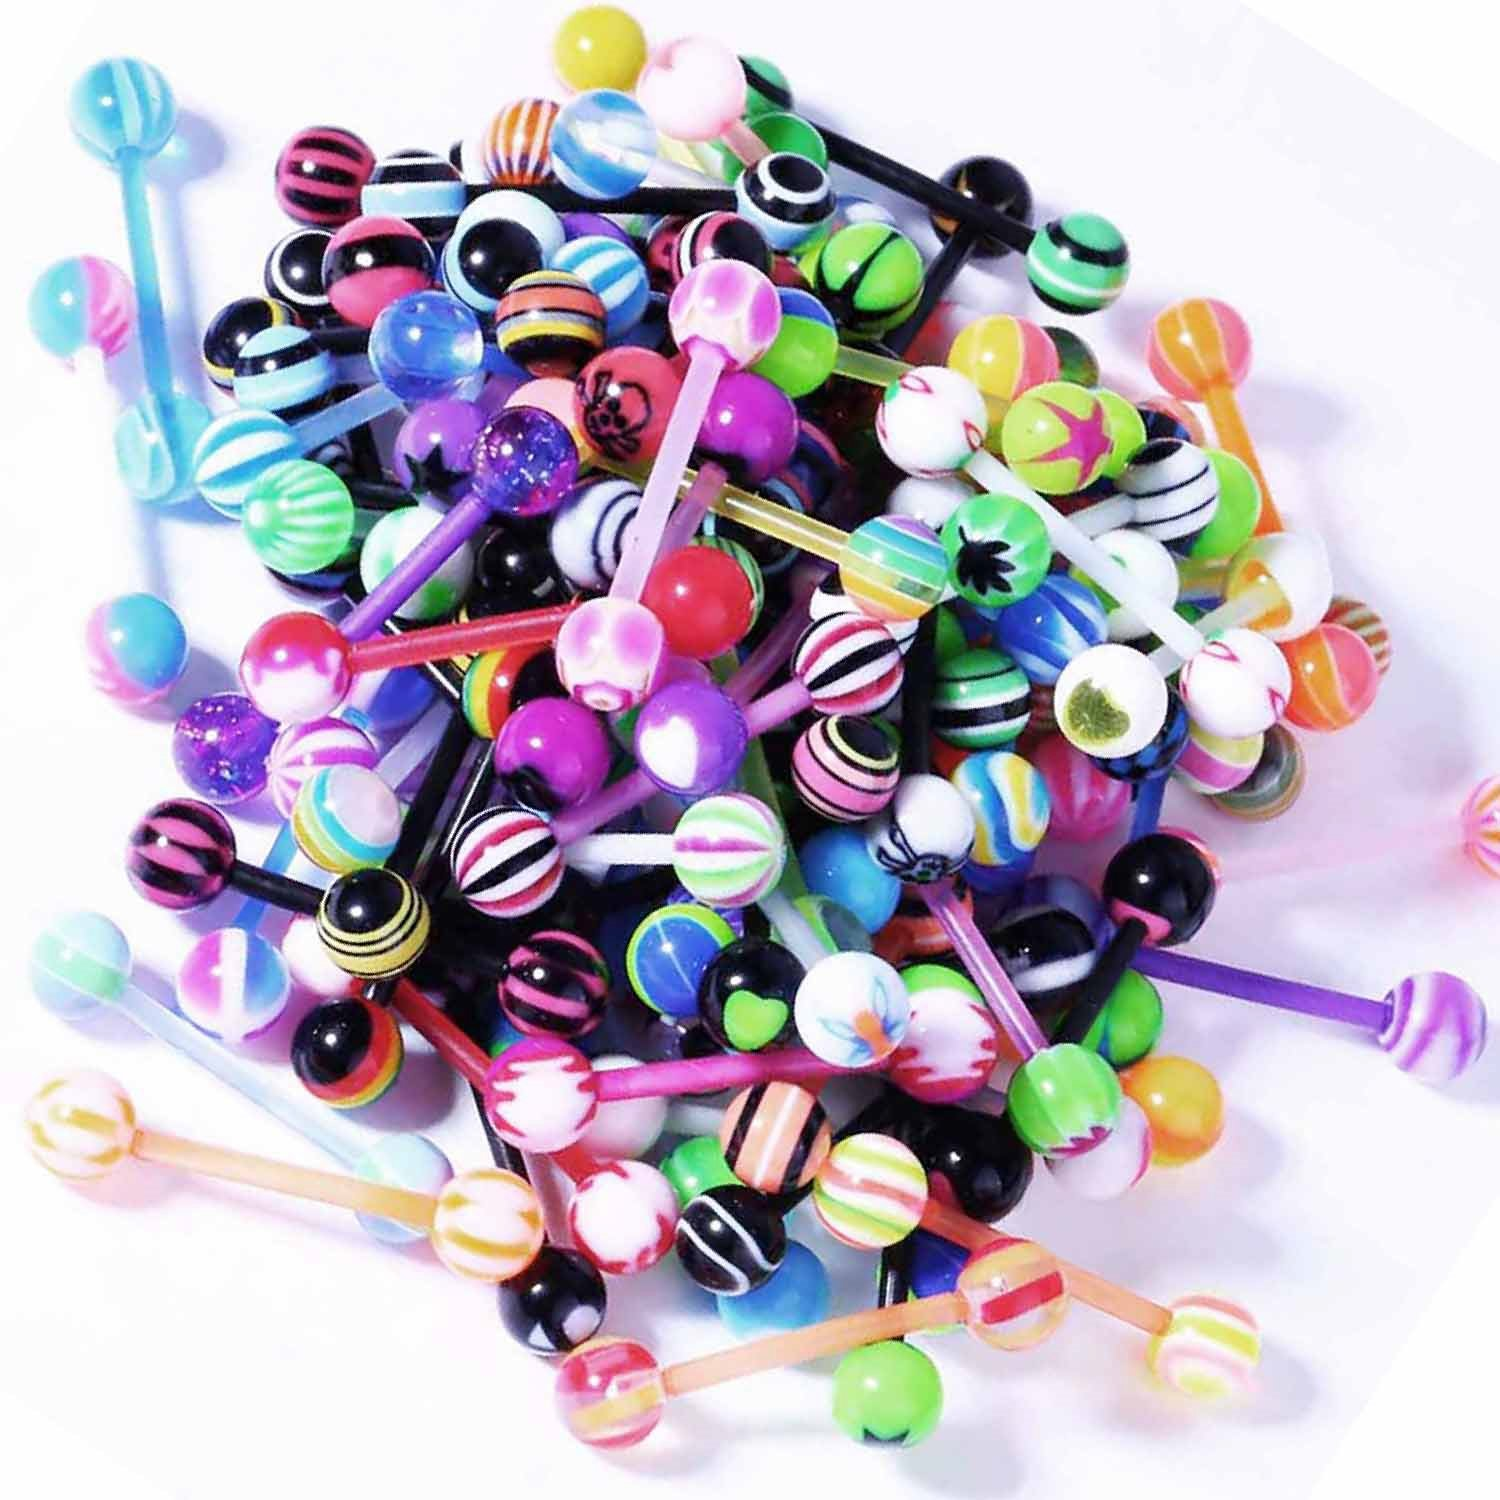 BodyJ4You 100PC 14G Mixed Tongue Rings Flexible Straight Barbell Body Piercing Jewelry Lot